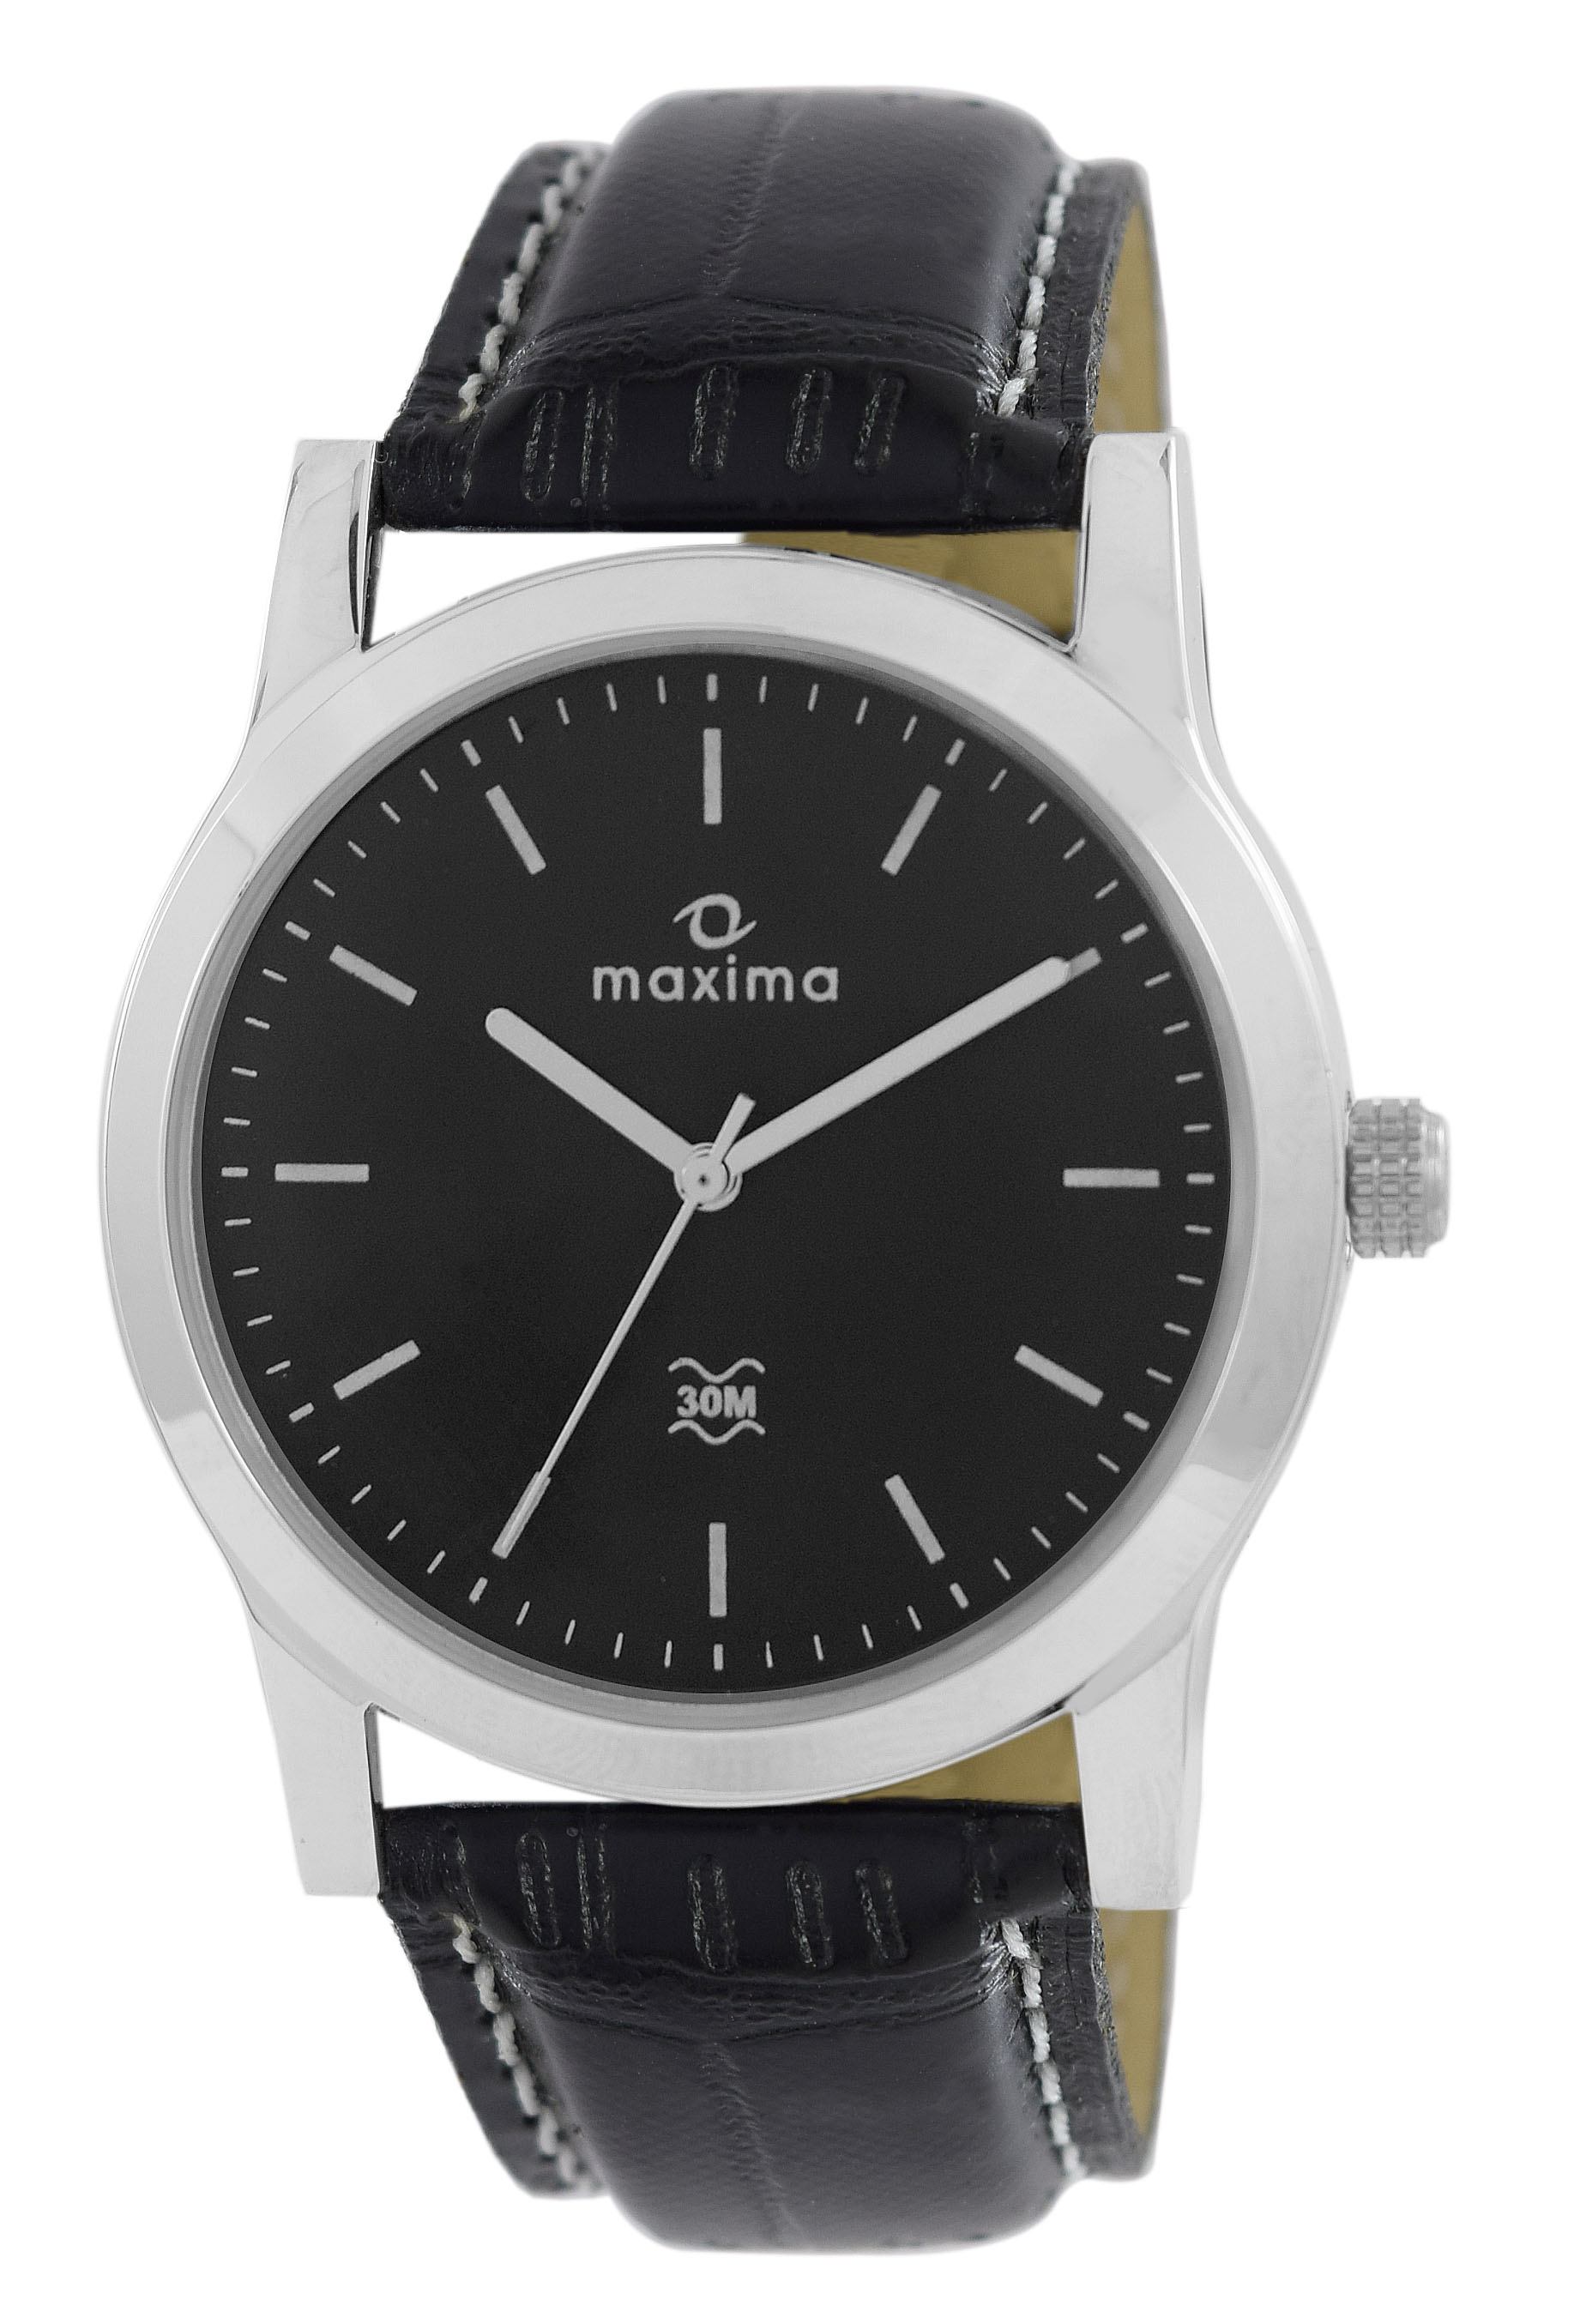 watch watches maxima myflowertree black